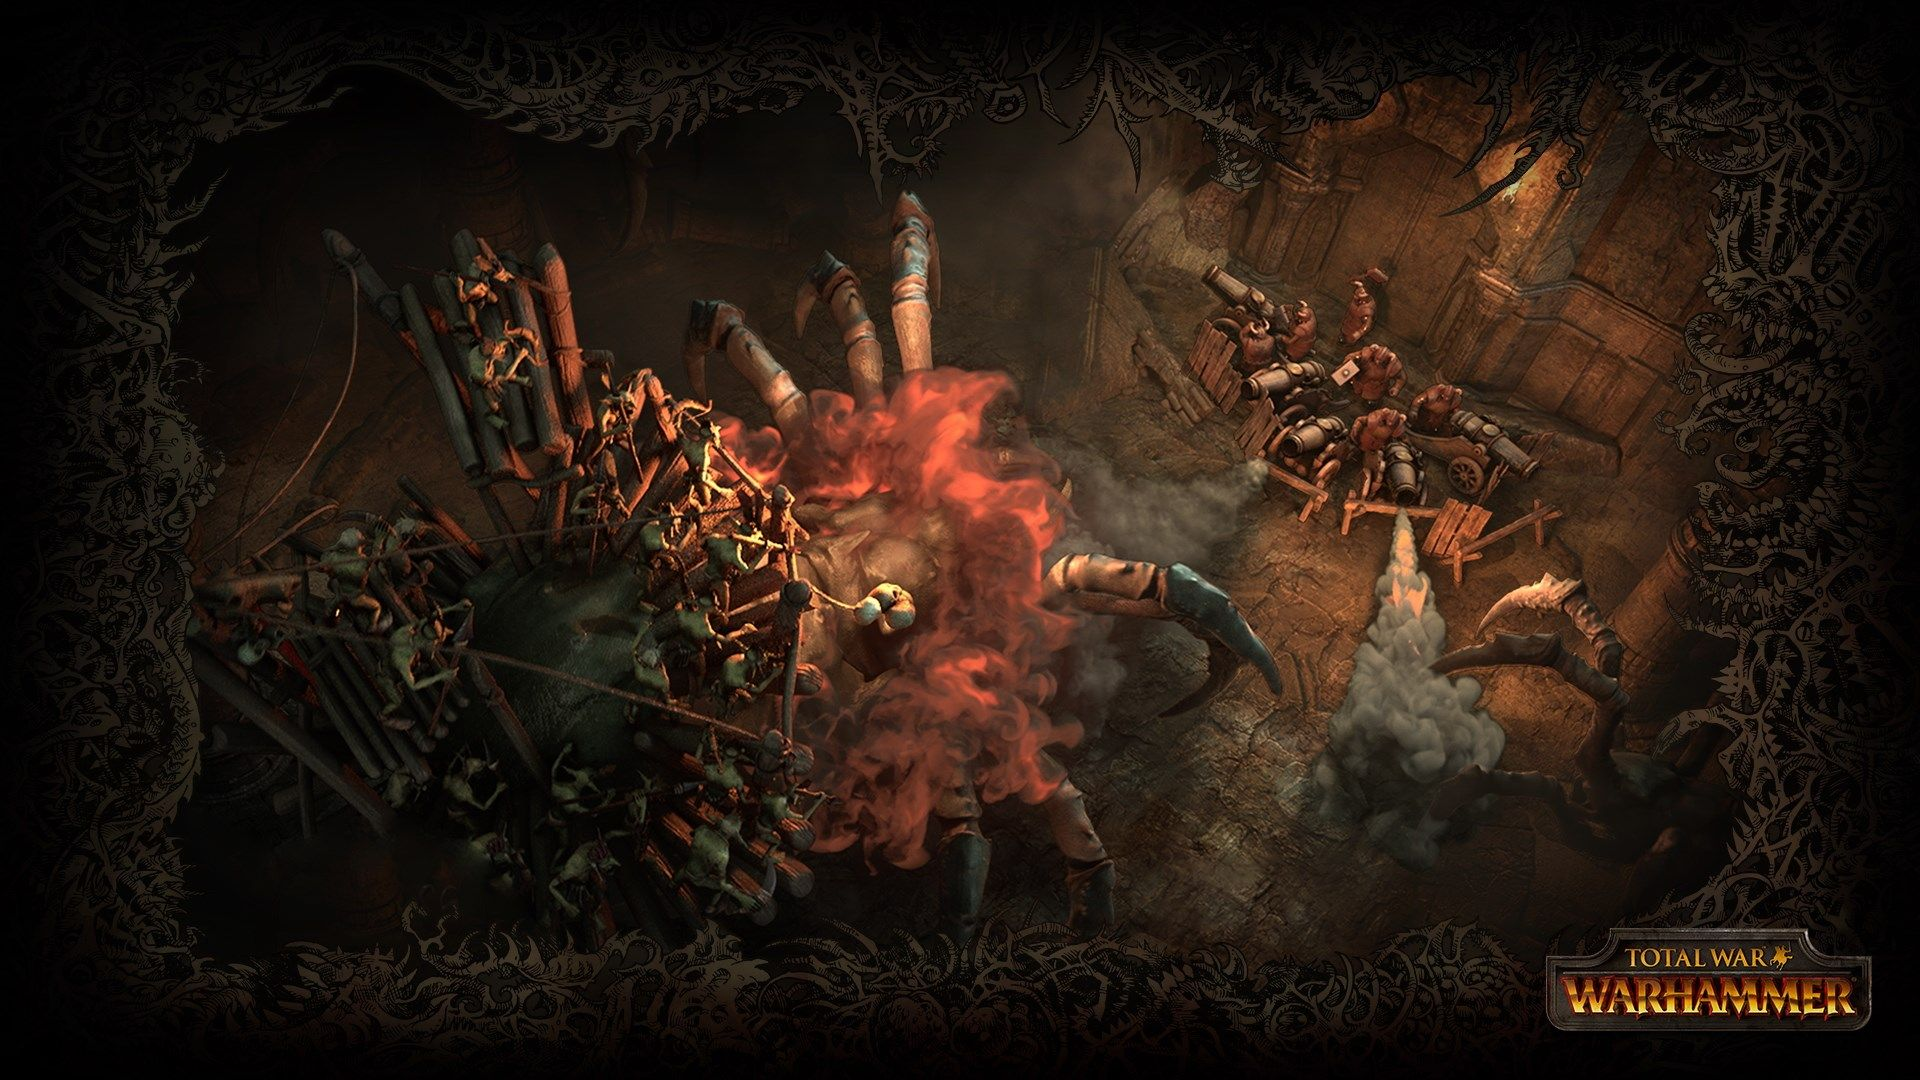 1920x1080 Total War Warhammer Game Wallpaper Warhammer Games